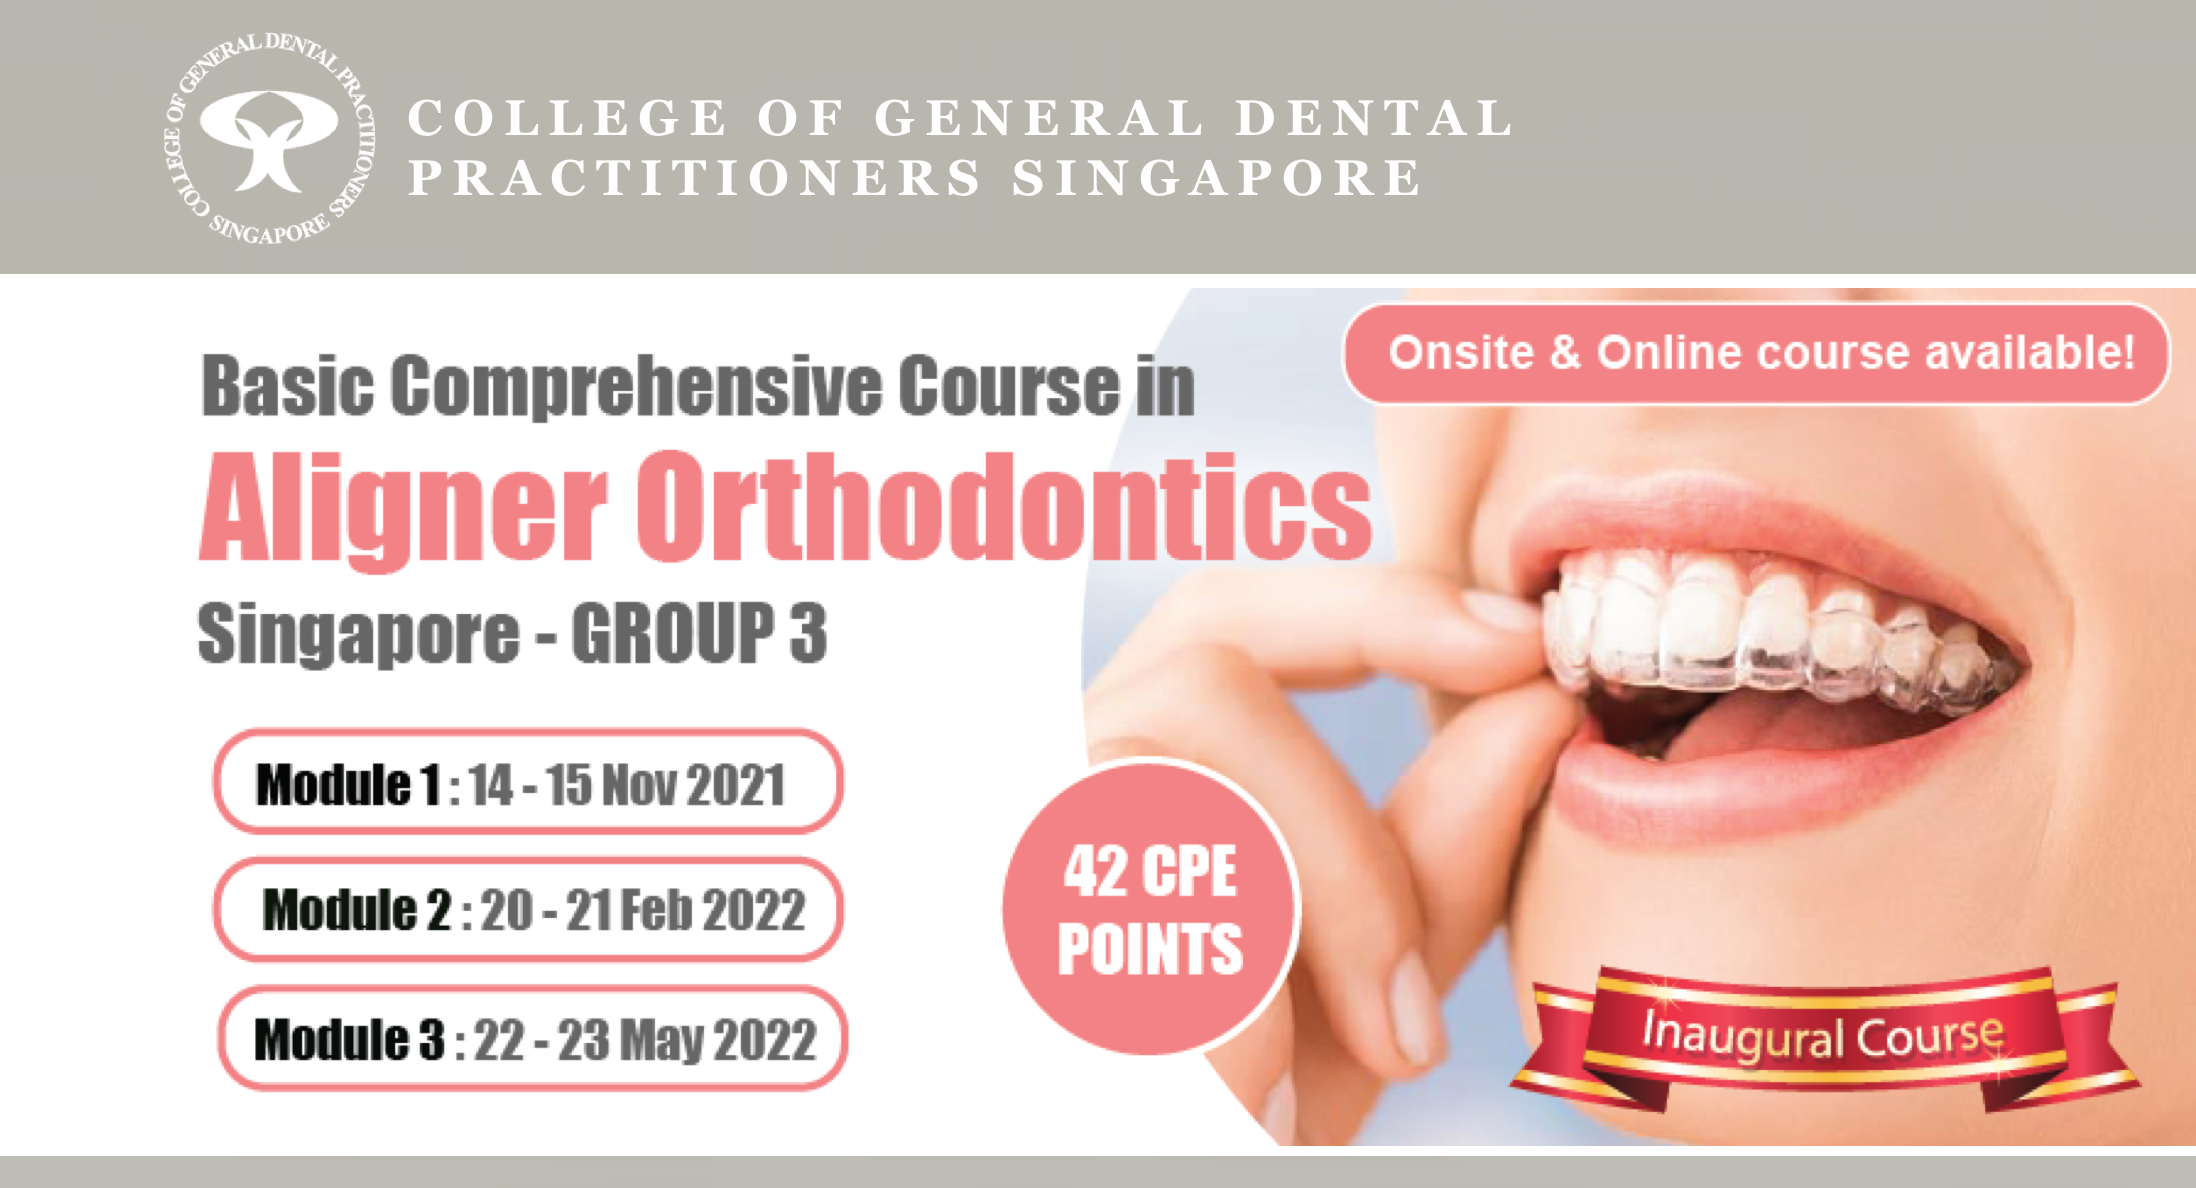 Basic Comprehensive Course in Aligner Orthodontics (Group 3)